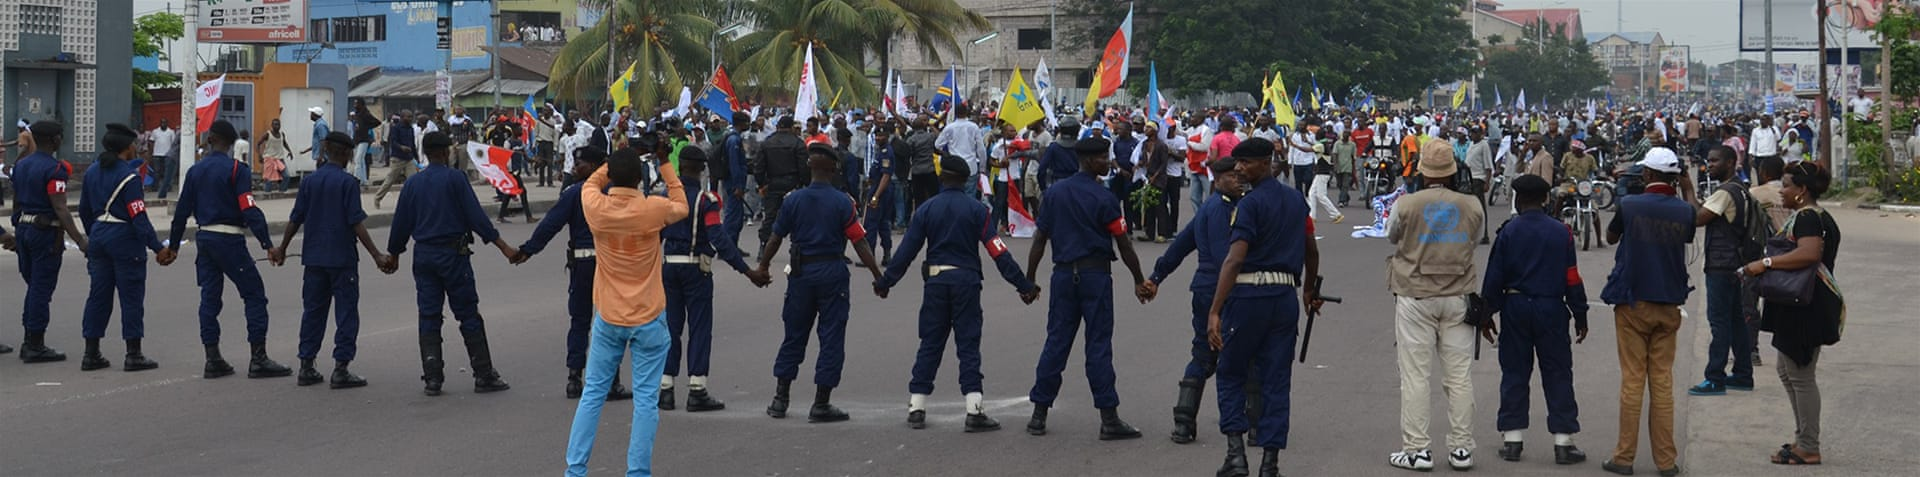 Security forces fired tear gas and charged at several thousand stone-throwing protesters in Kinshasa [Habibou Bangré/Al Jazeera]